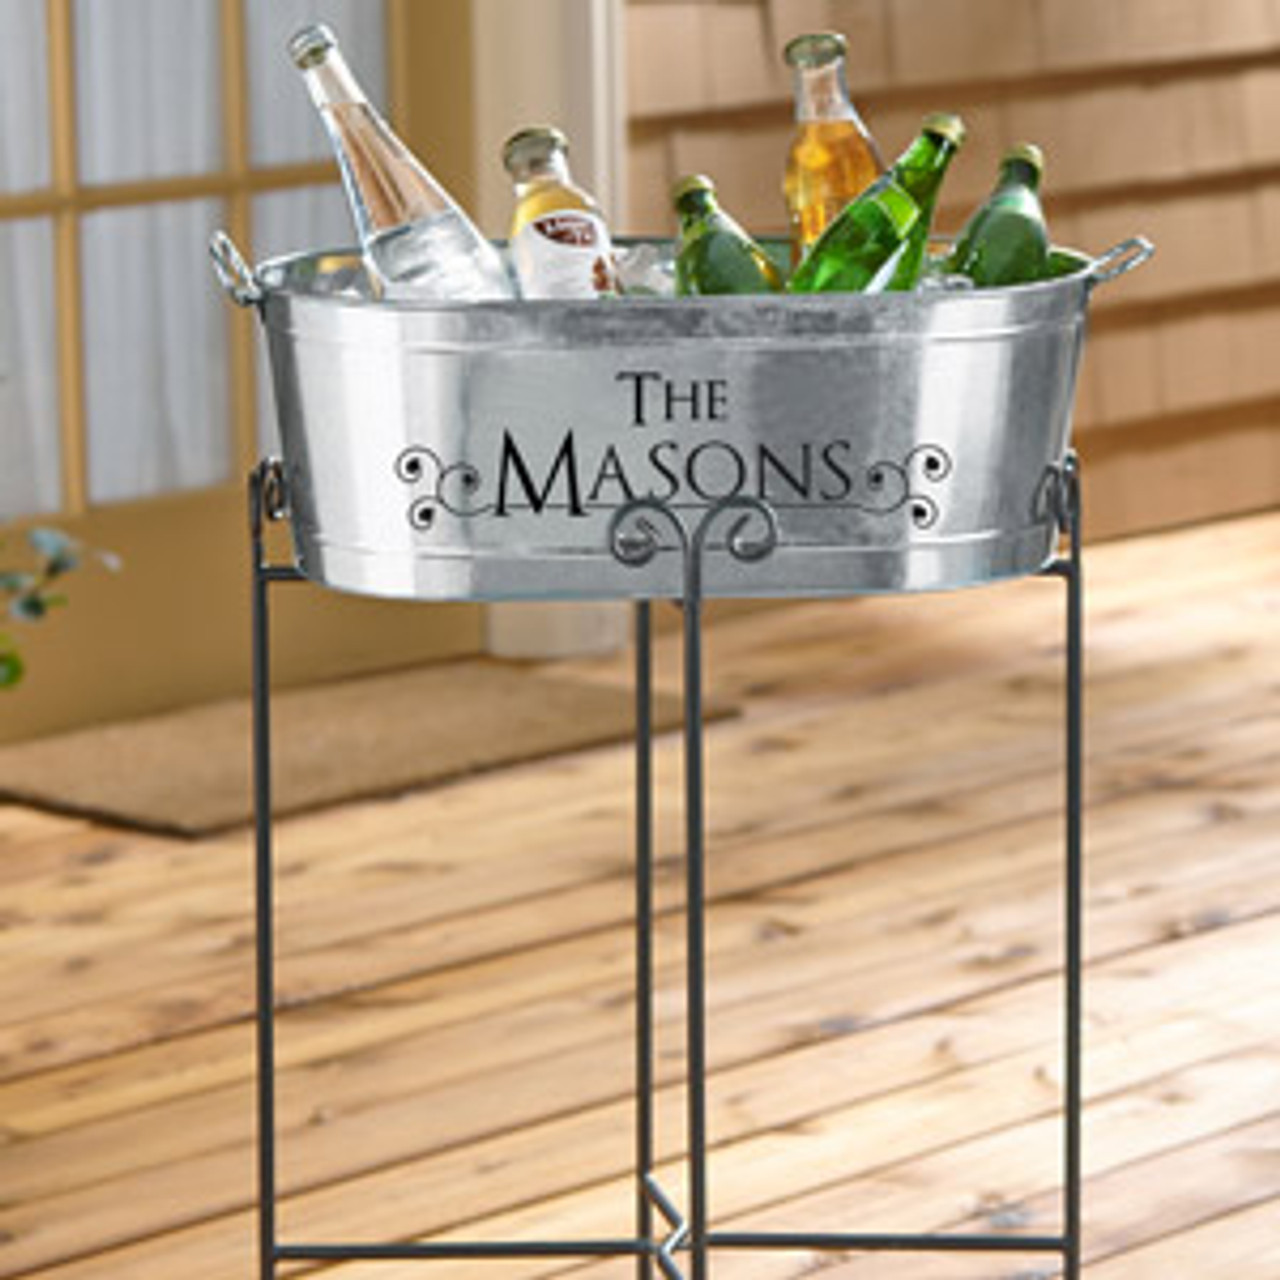 Custom, Personalized, Ice, Beer, Tub, Bucket, Bar, Wedding, Ice-Bucket, Beer Tub, Bar Back, family,home bar